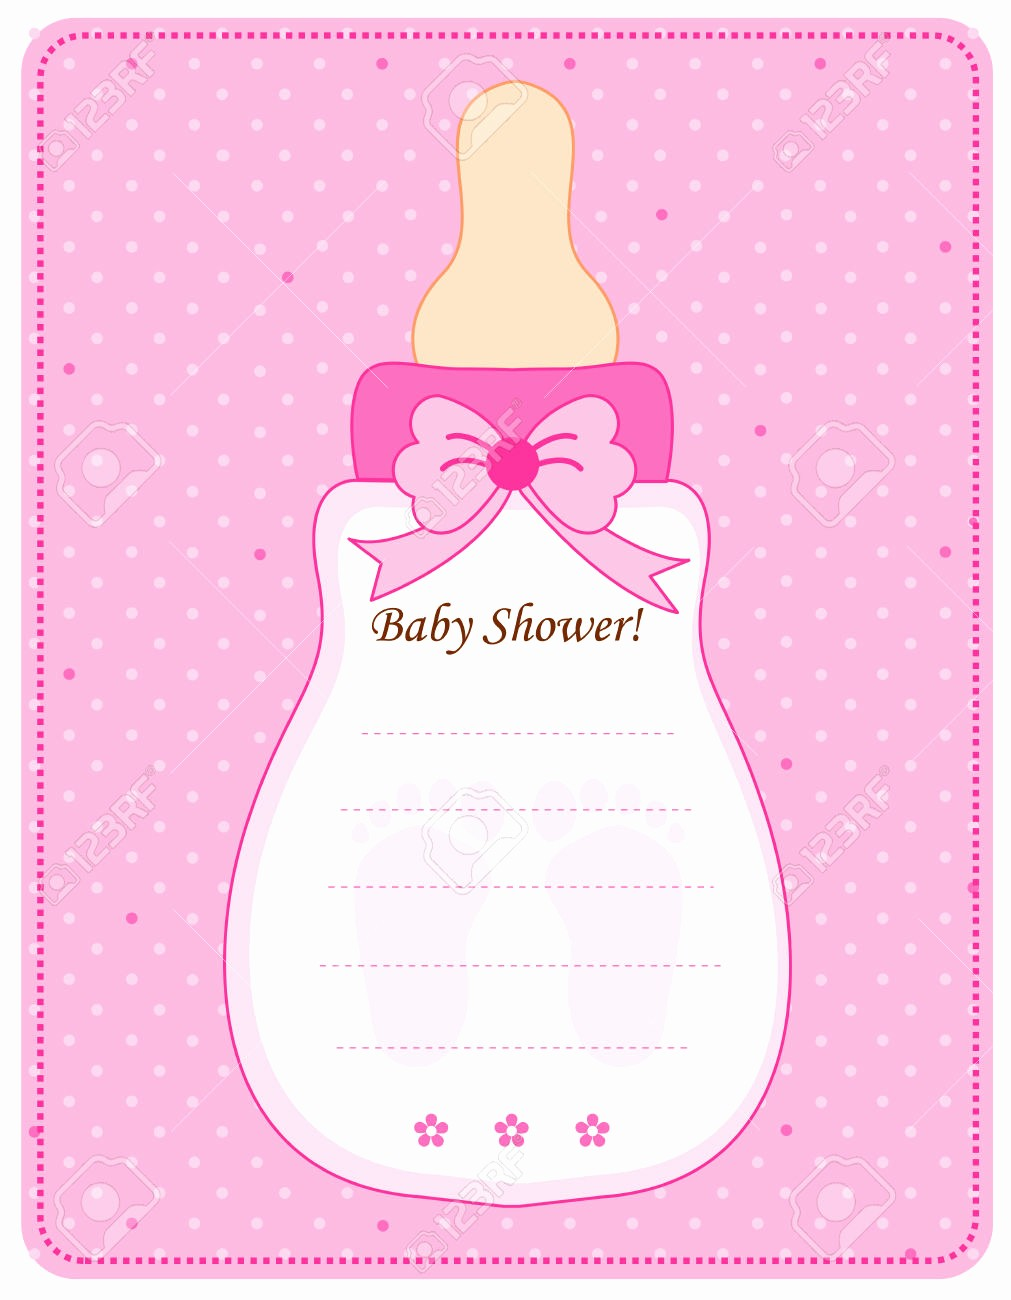 Baby Shower Invitation List Template Elegant Baby Shower Invitations for Girls Templates